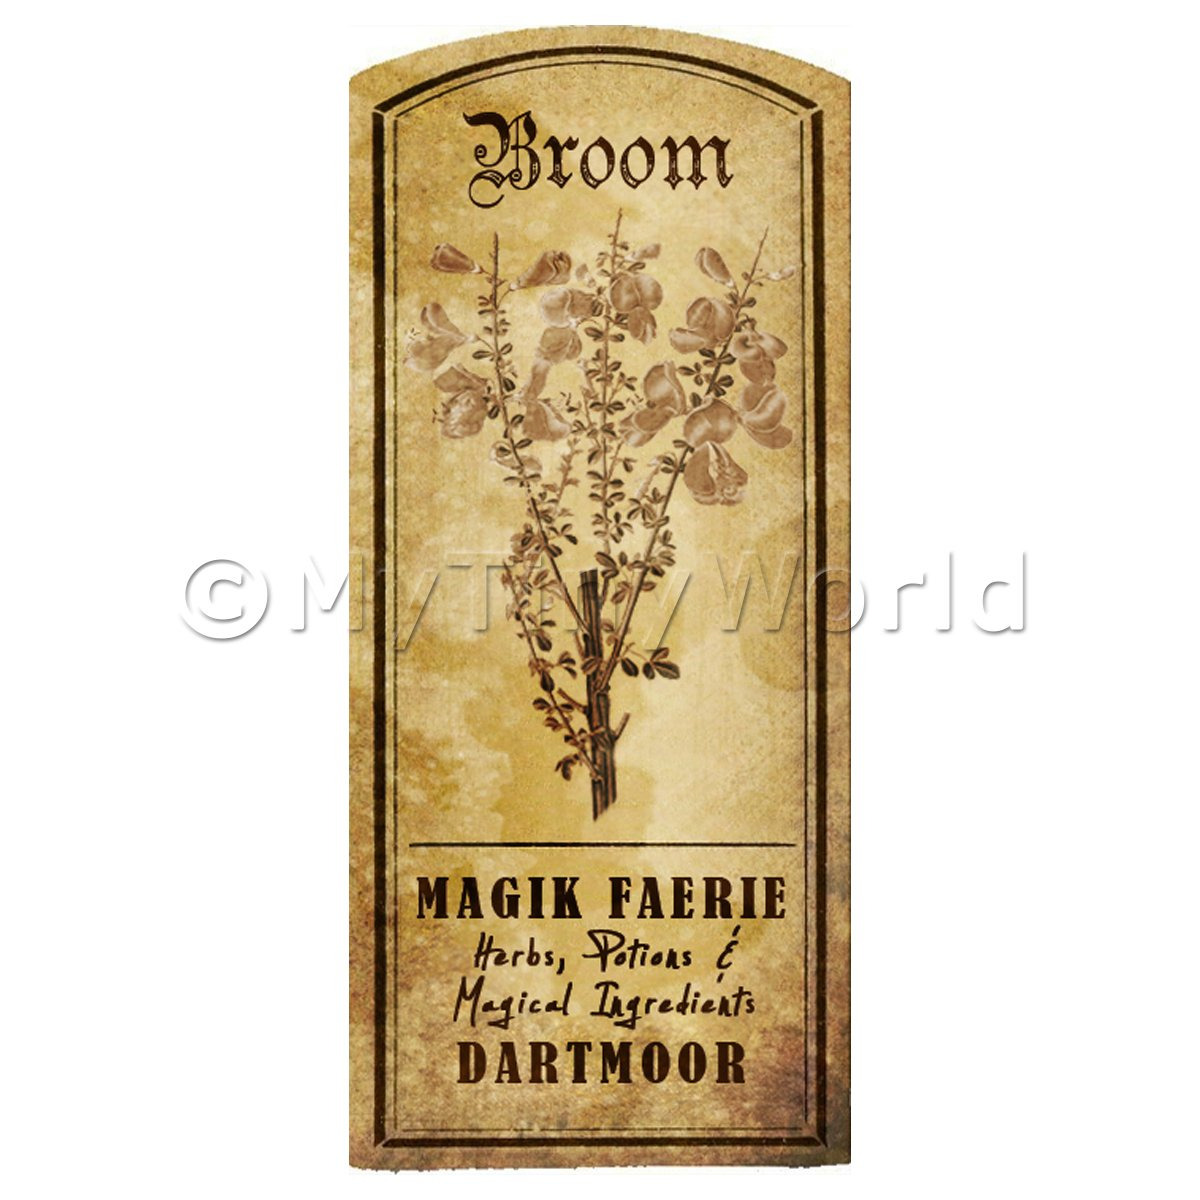 Dolls House Herbalist/Apothecary Broom Herb Short Sepia Label